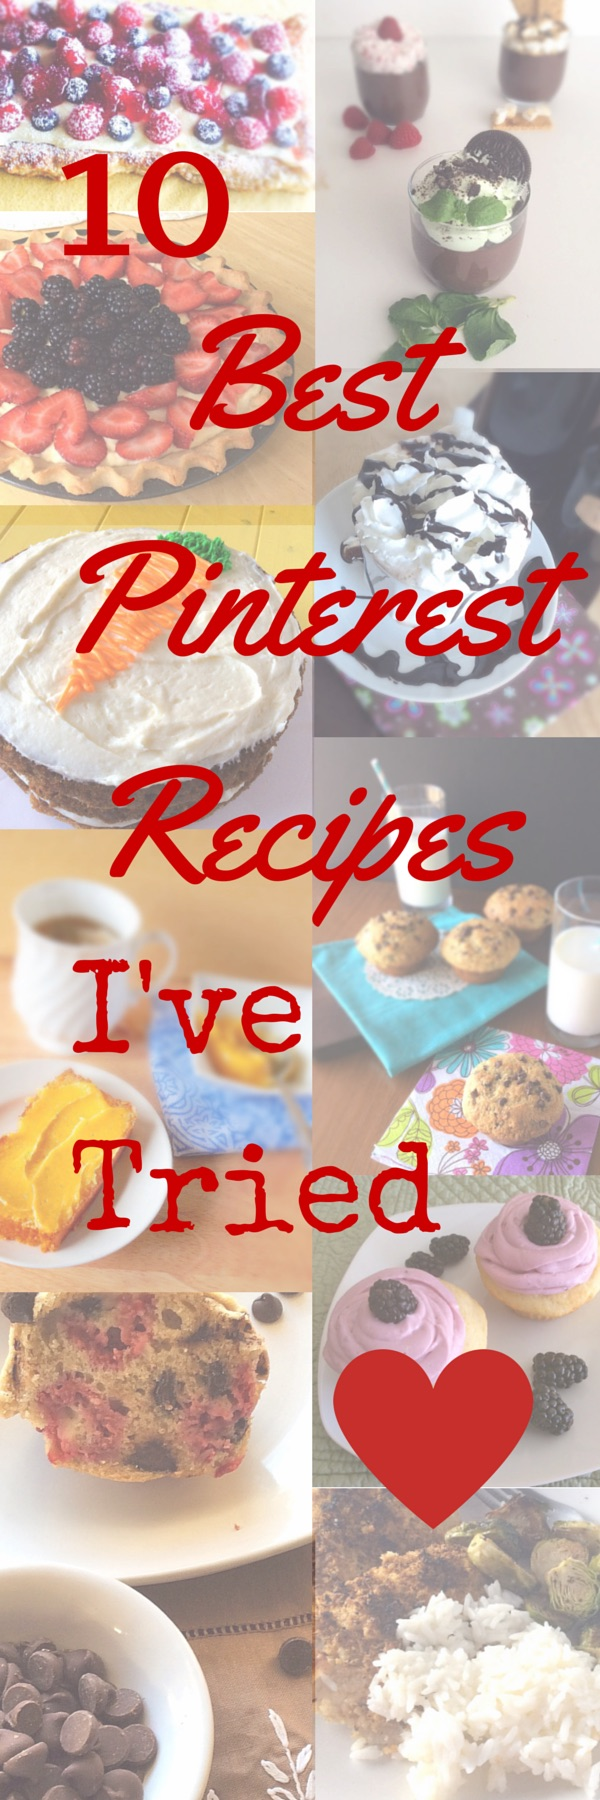 Dessert, breakfast, and a meal are all covered in this list of 10 Pinterest recipes I love